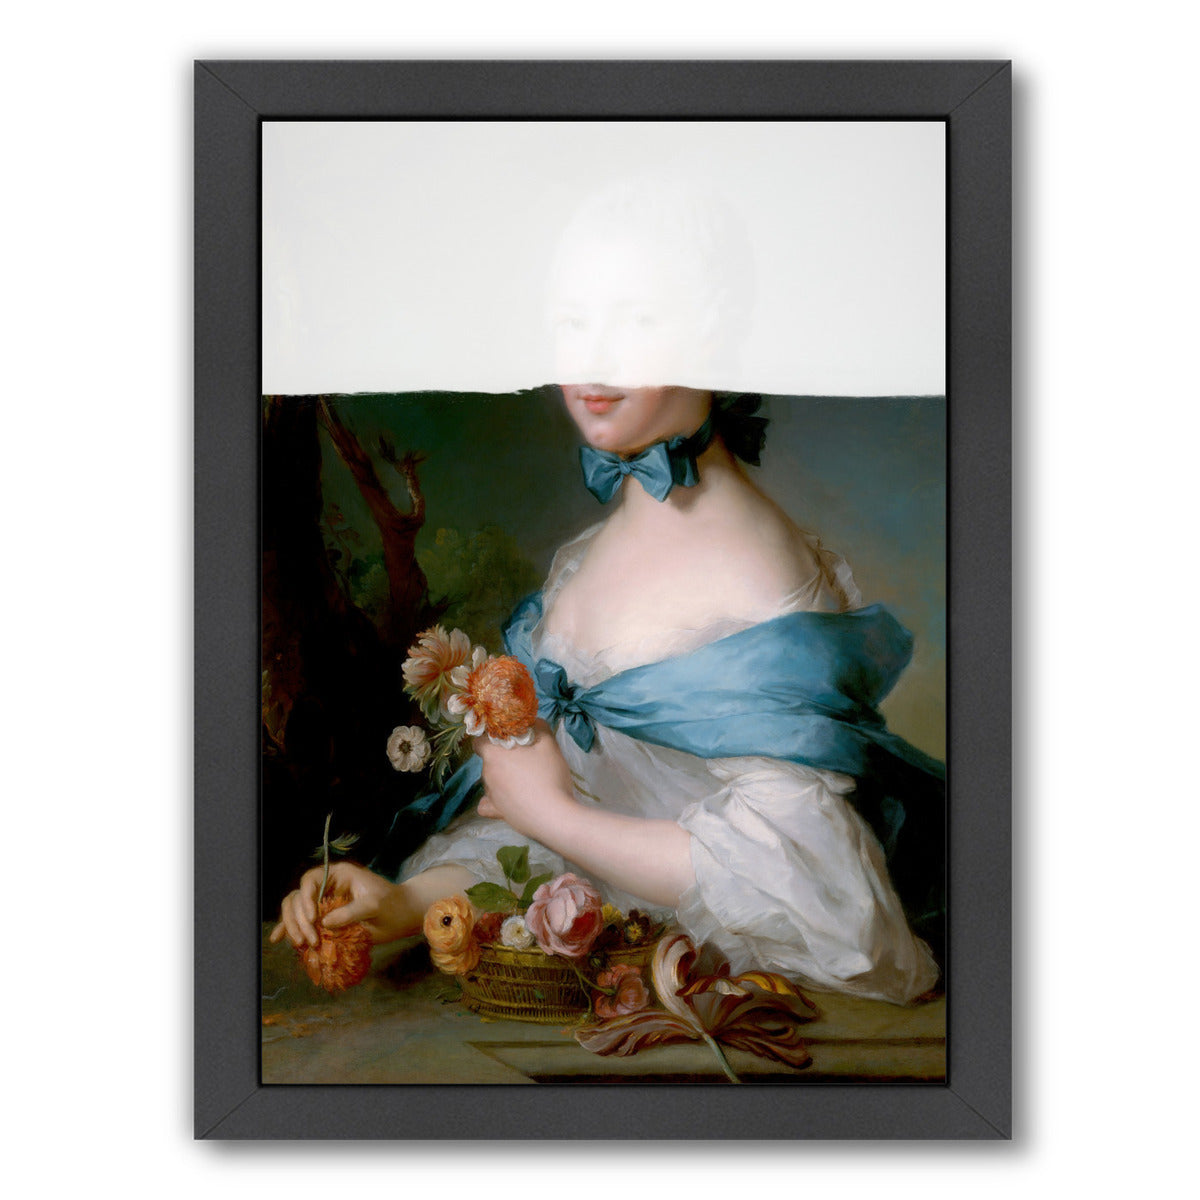 Flower Girl By Chaos & Wonder Design - Black Framed Print - Wall Art - Americanflat